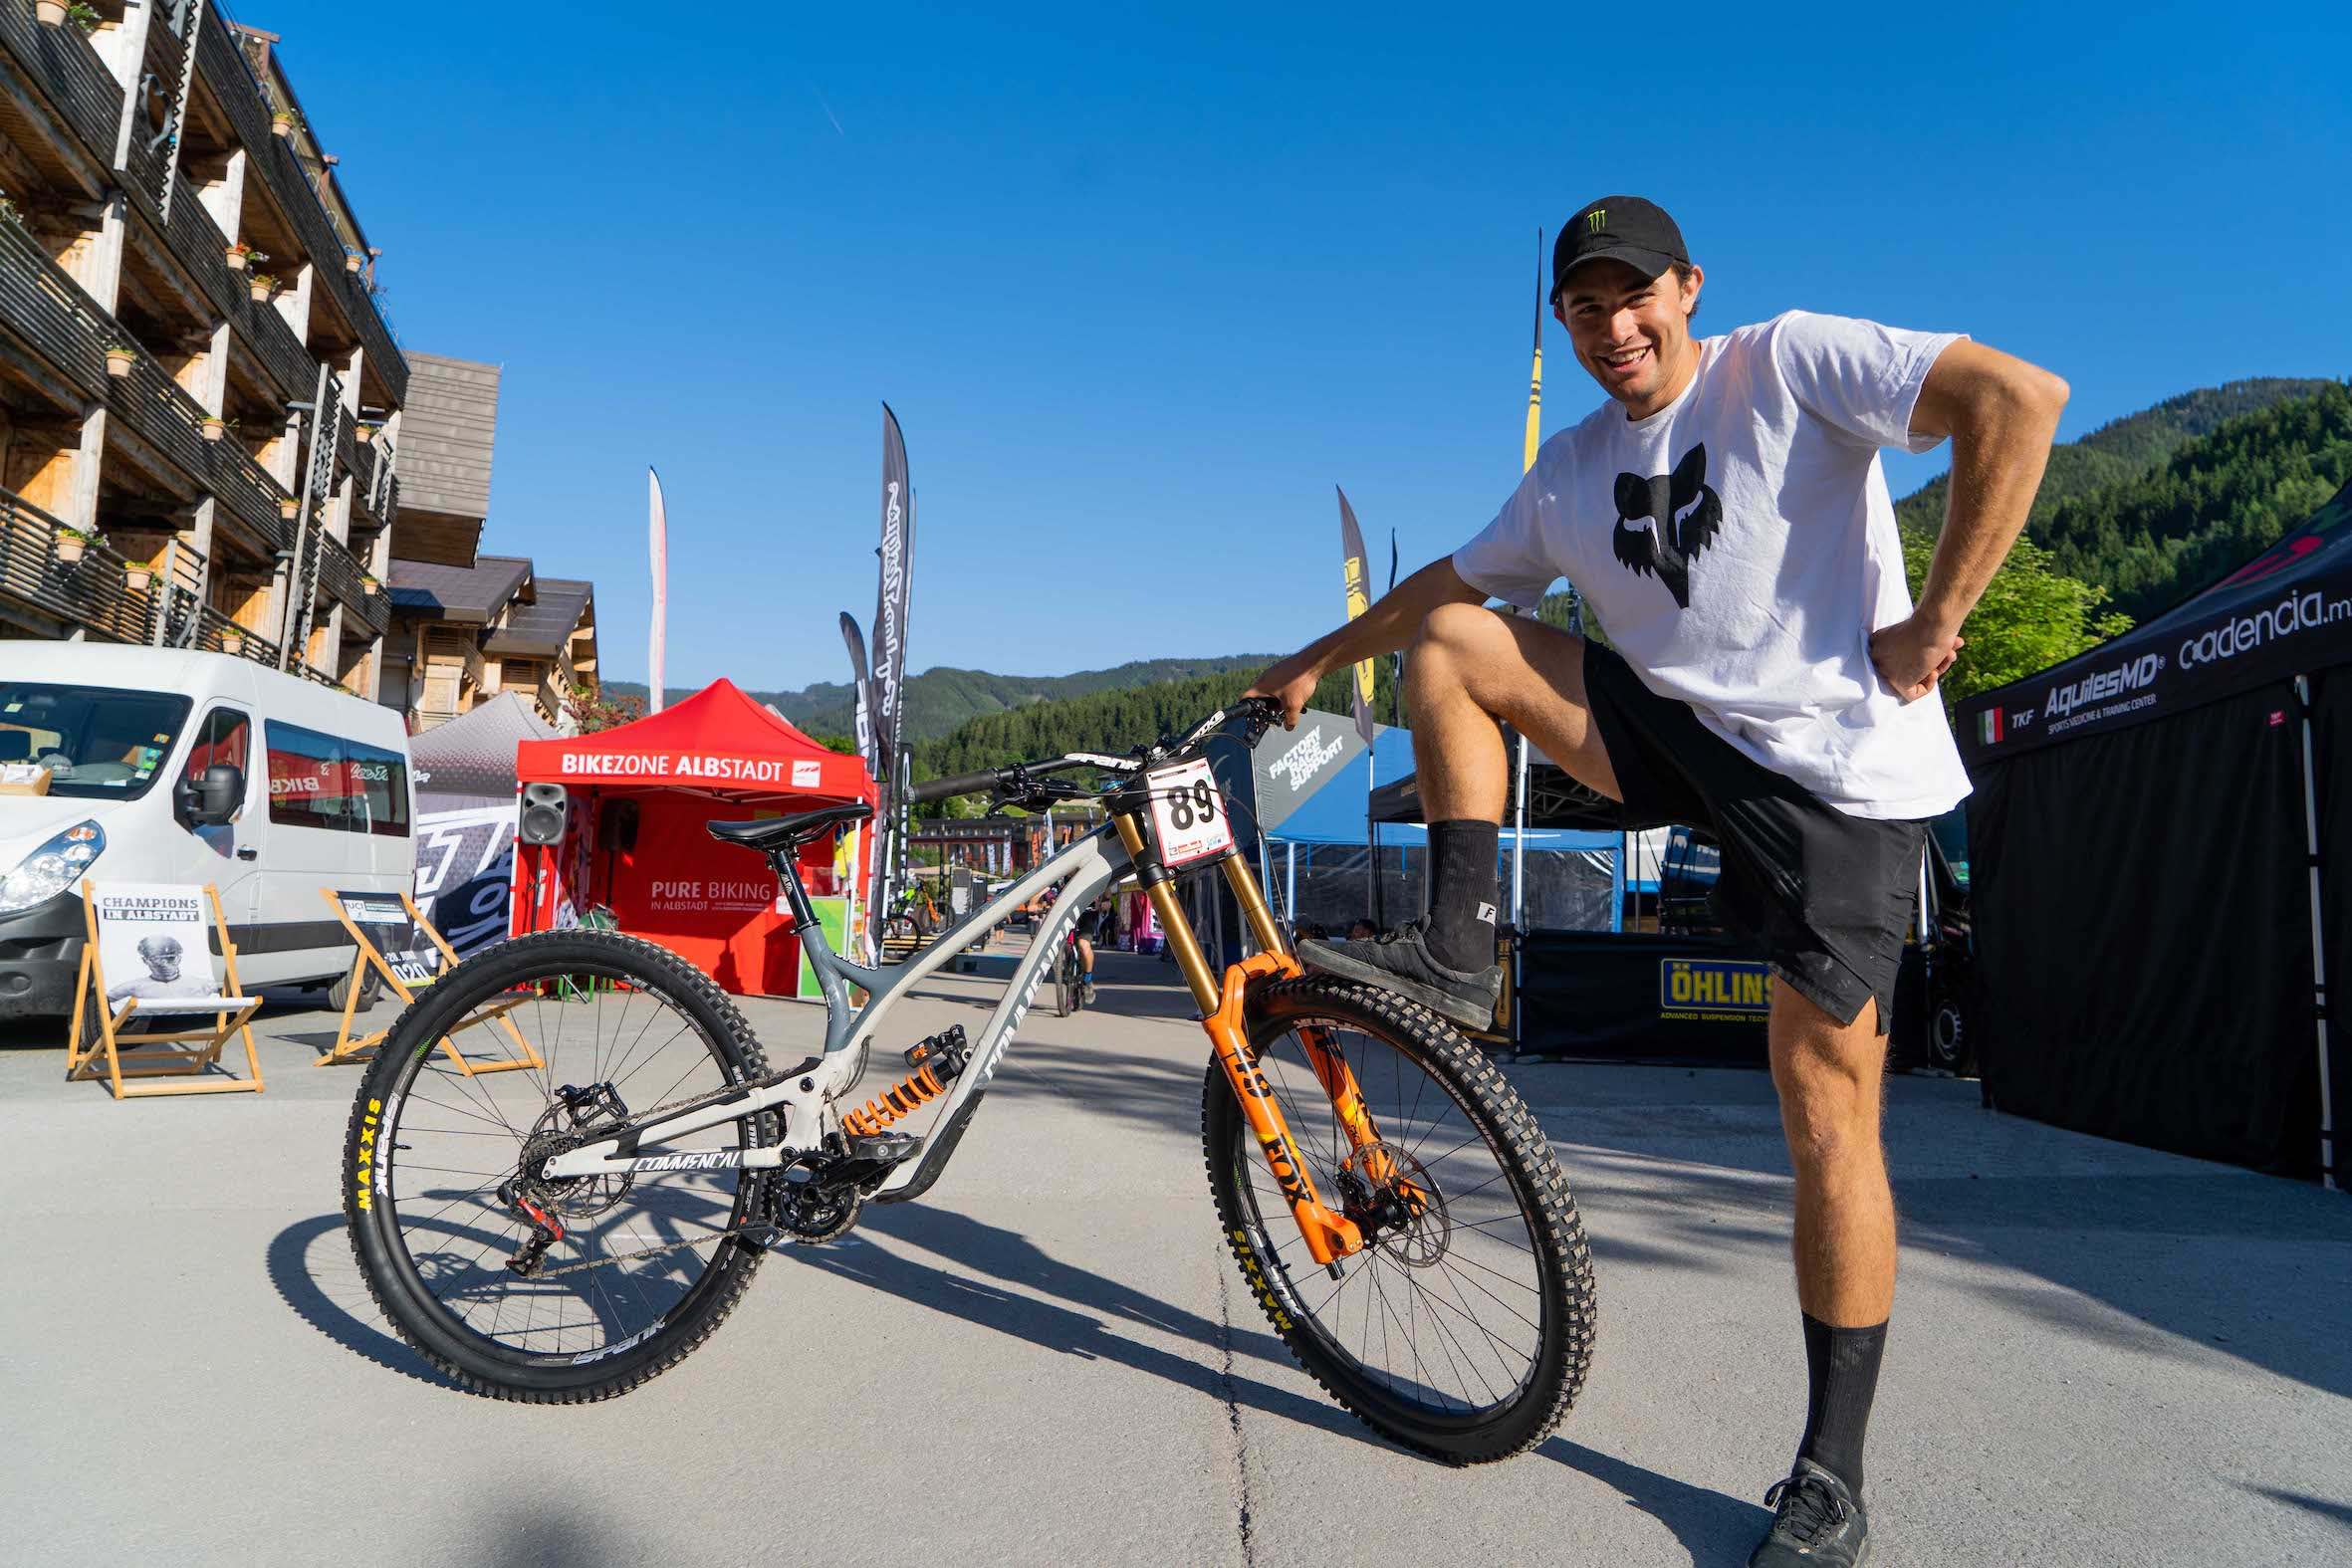 Bike Check with Theo Erlangsen and his Commencal 29 Supreme Downhill MTB bike